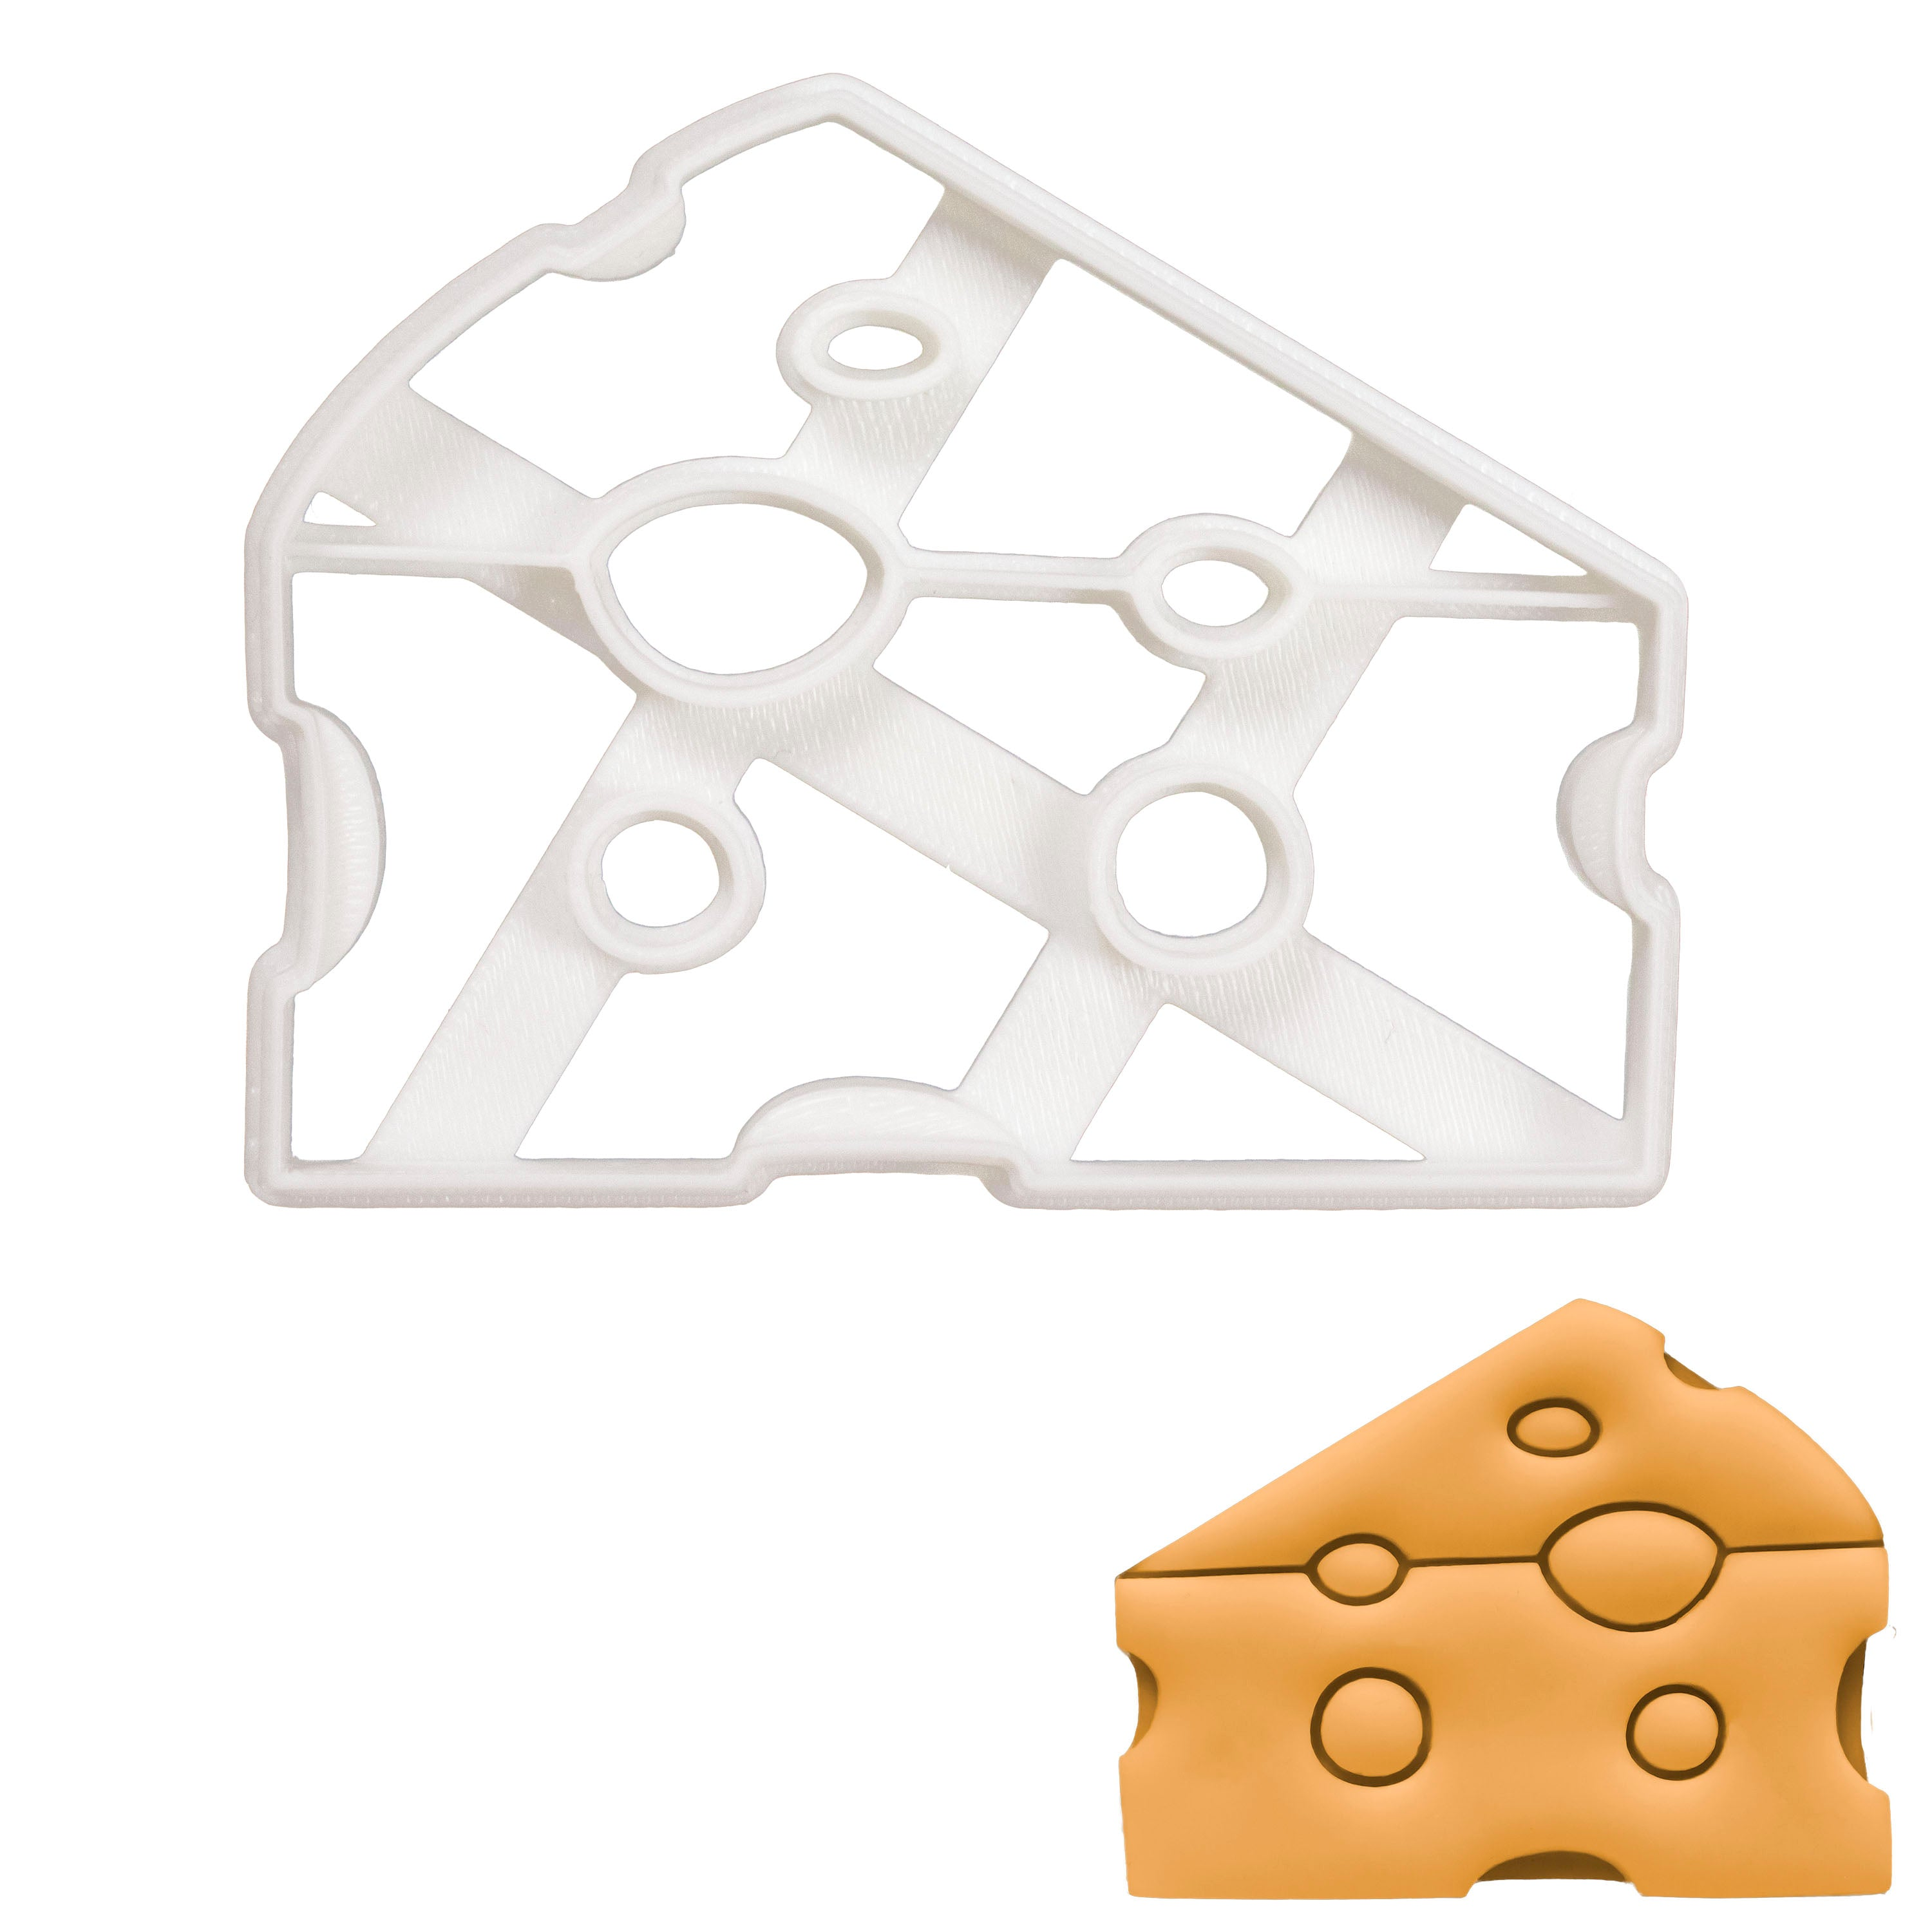 Cheese cookie cutter